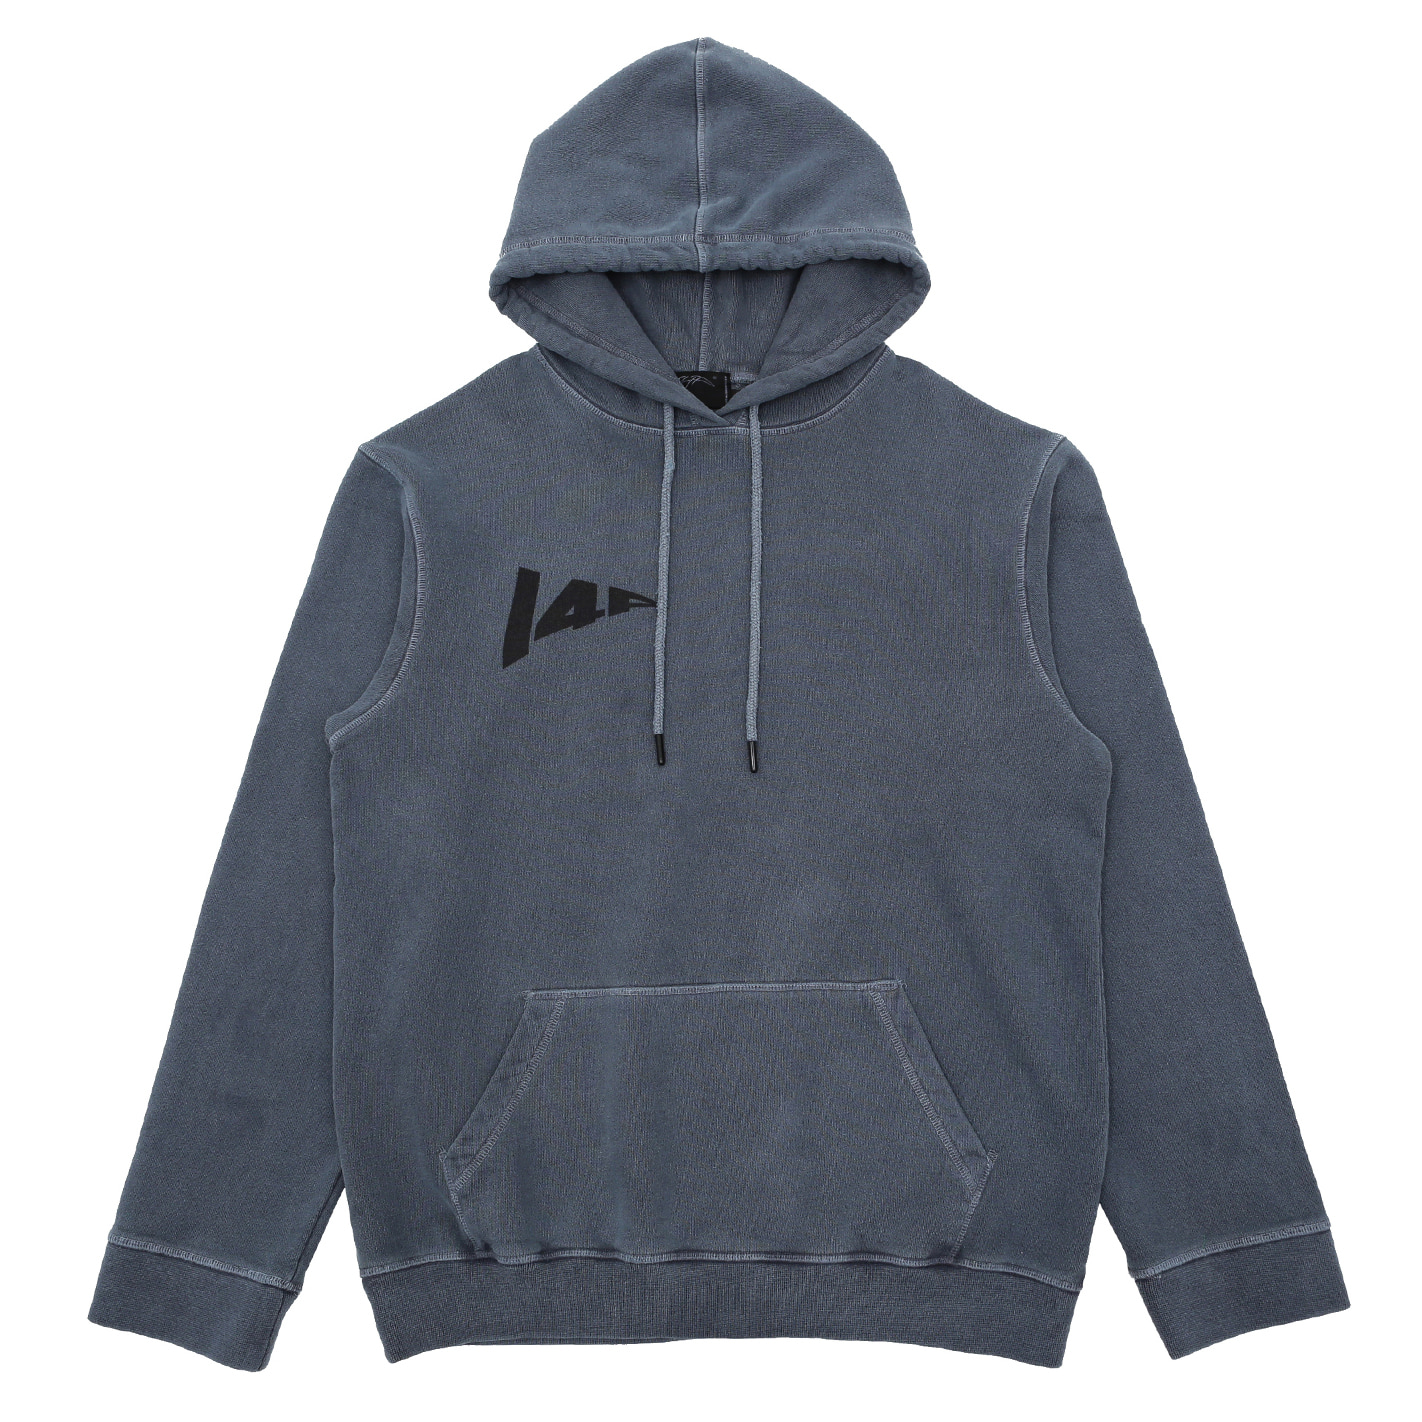 [I4P]148 Washing Hood T-Shirt Gray